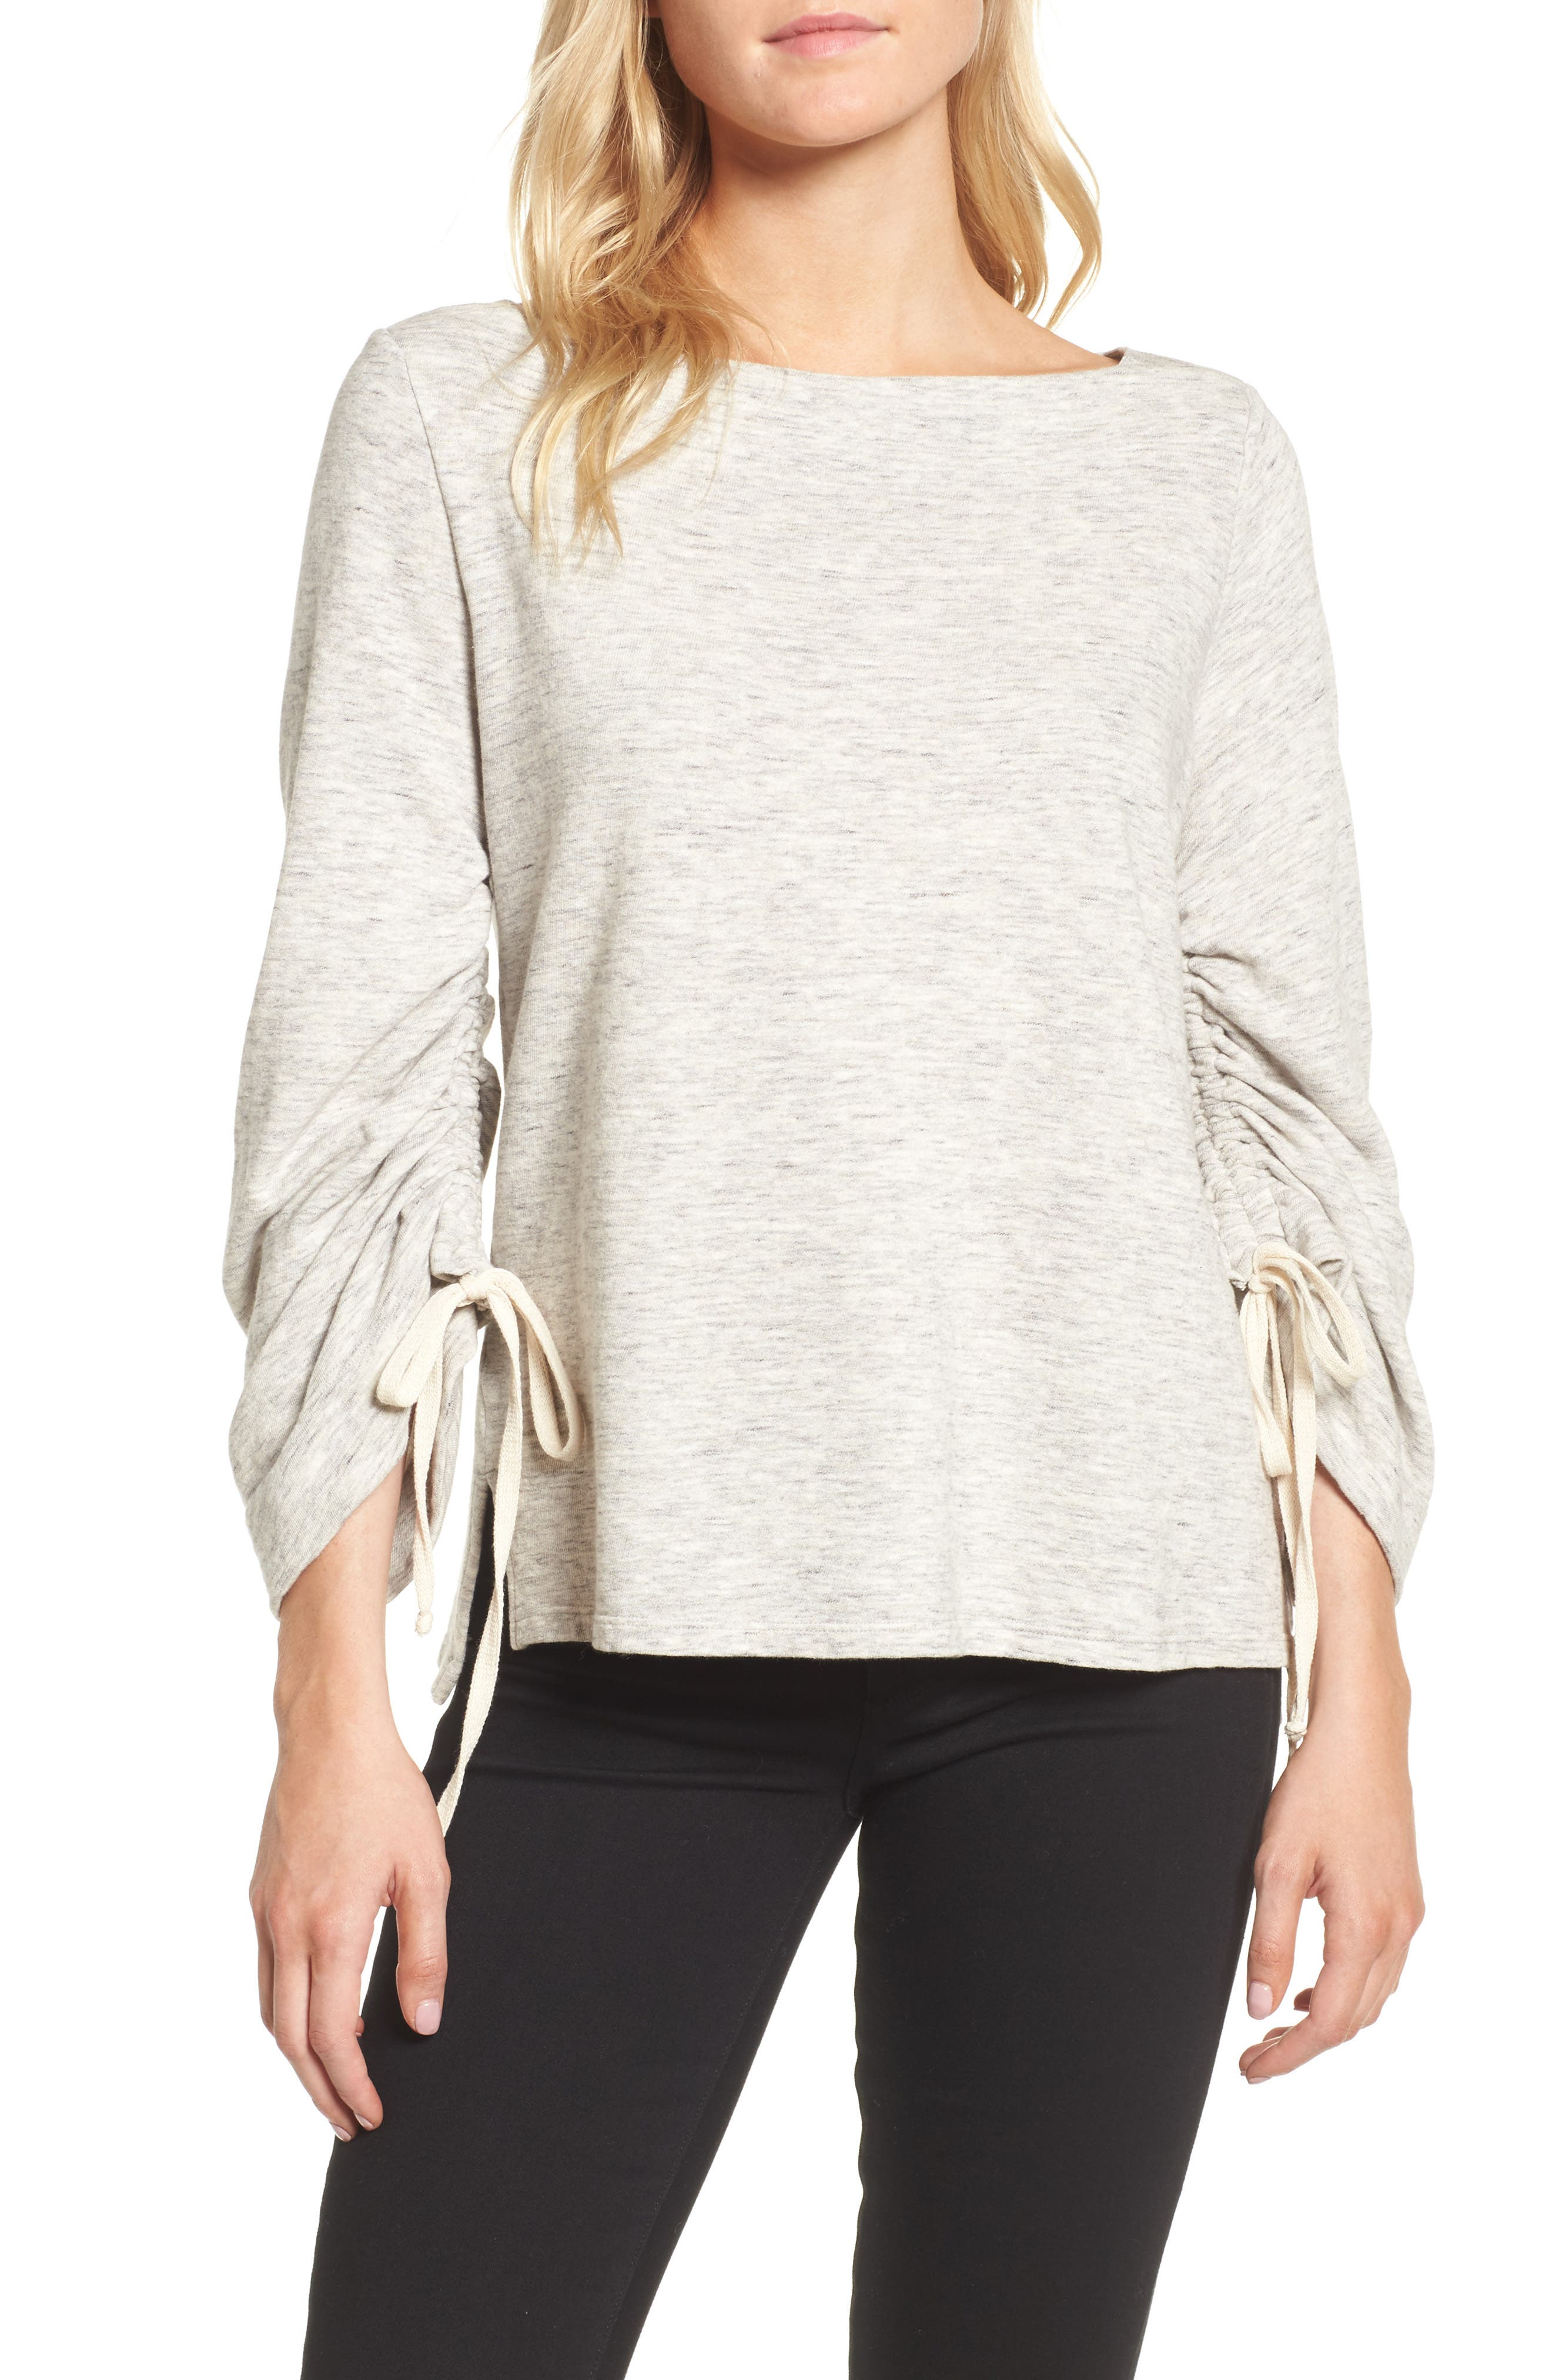 Ruched Sleeve Sweatshirt,                             Main thumbnail 1, color,                             Heather Grey